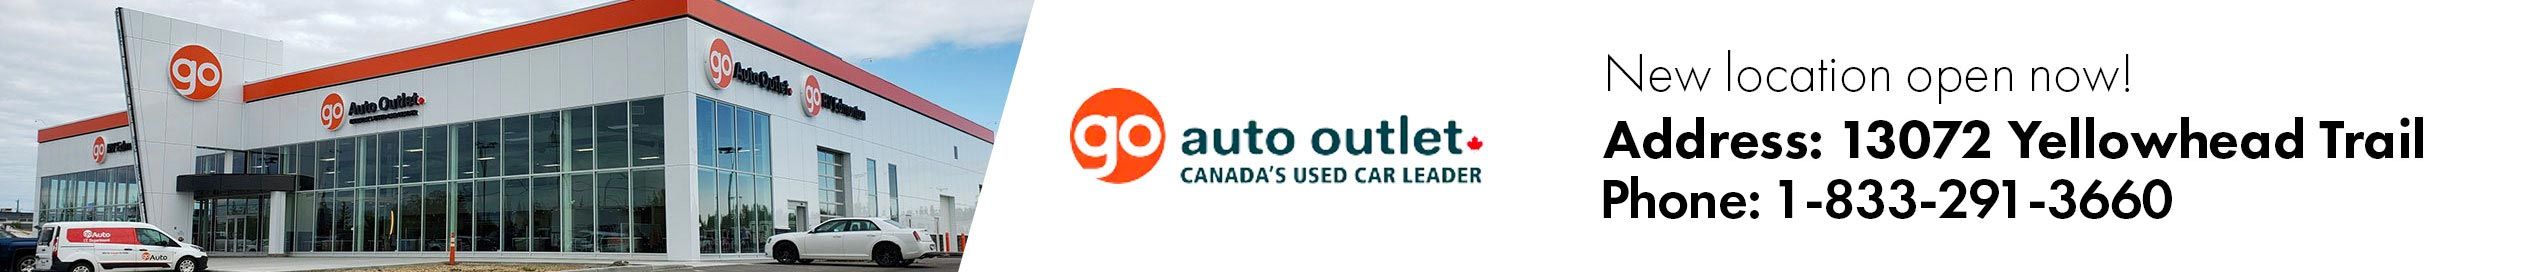 Go Auto Outlet Yellowhead New Location